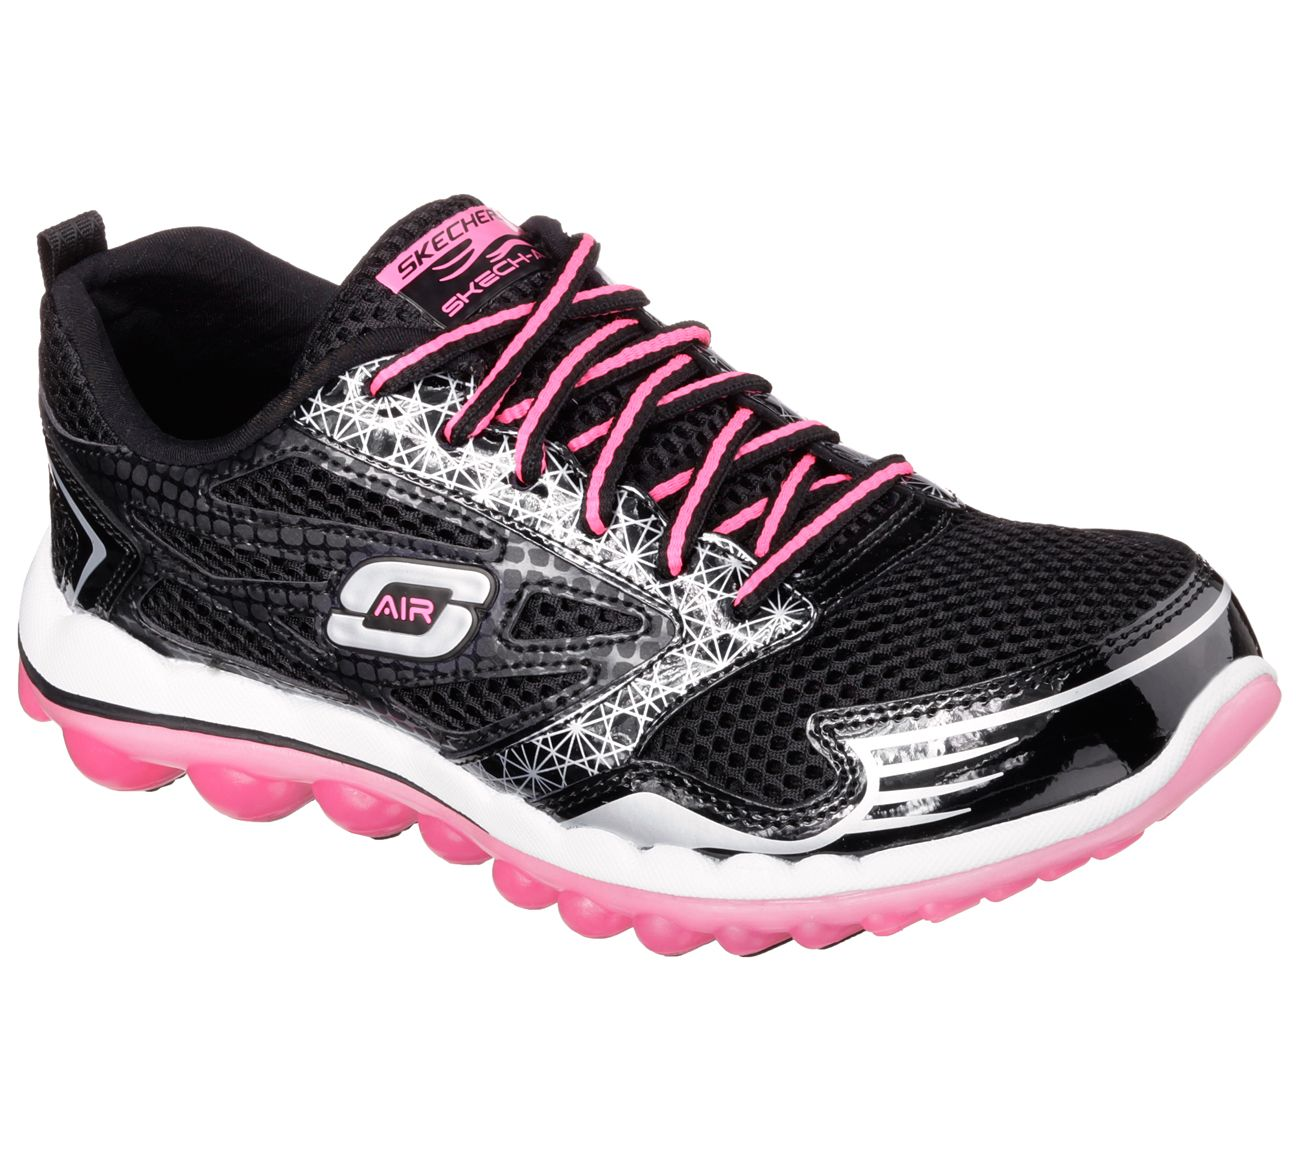 skechers shoes 2015